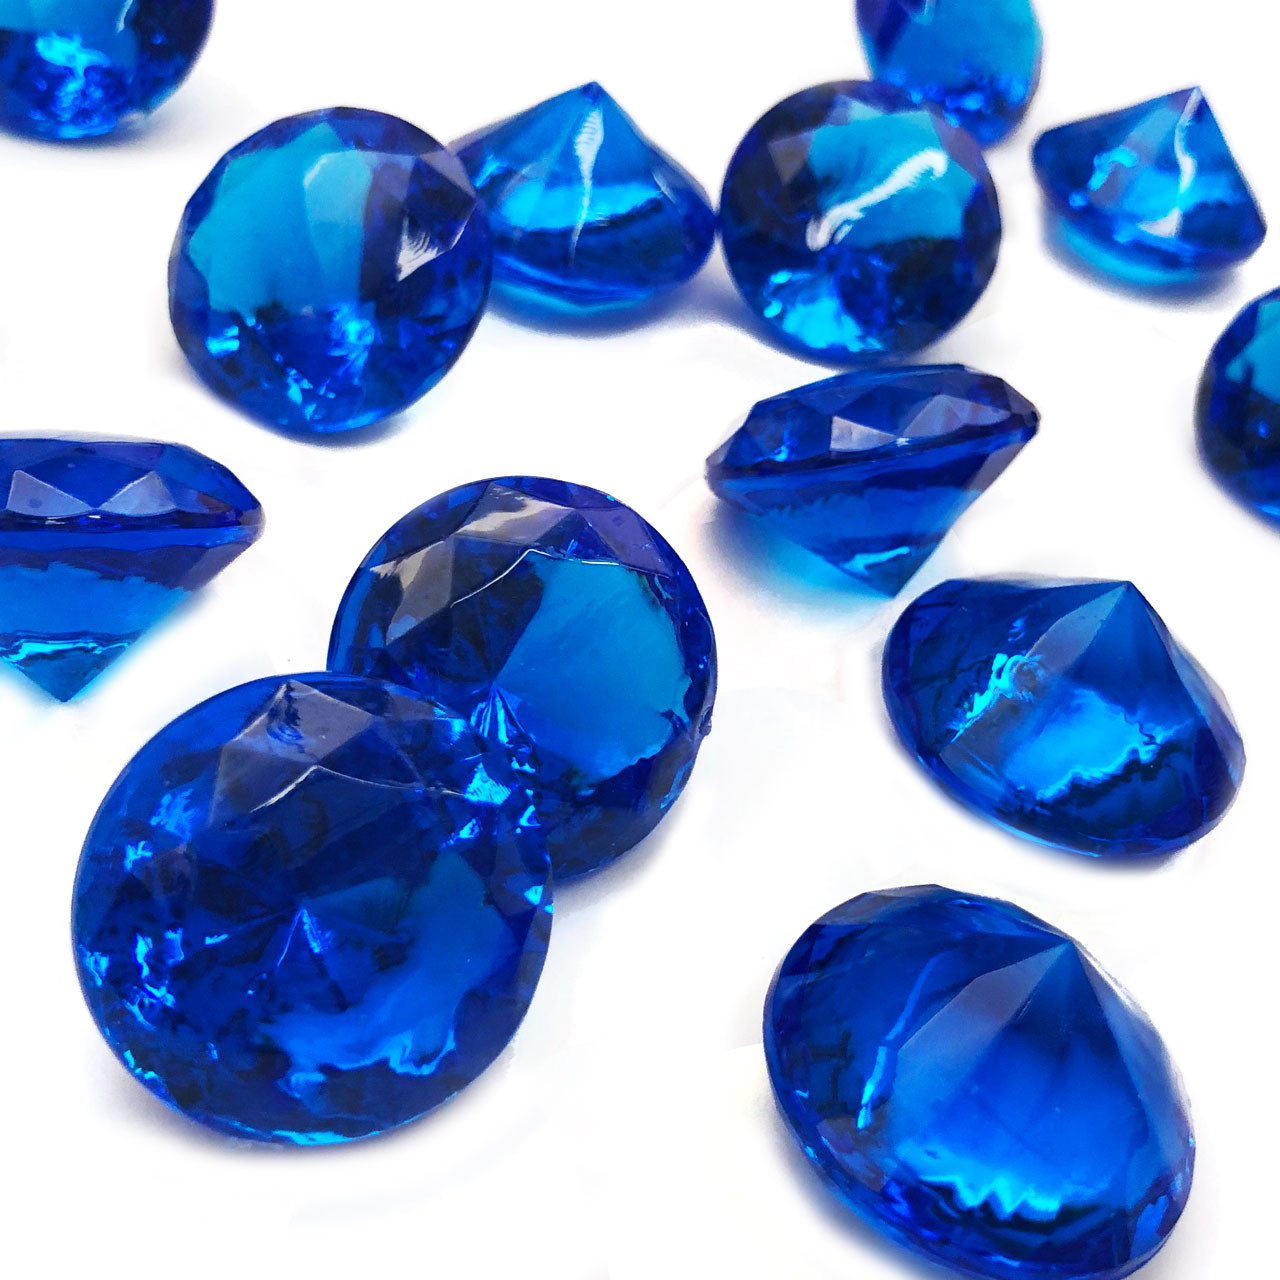 Outstanding 40 Blue Acrylic Crystal Diamonds Large One Inch Jewels Table Centerpiece Wedding Decorations Bridal Shower Party Confetti Vase Filler Interior Design Ideas Gresisoteloinfo